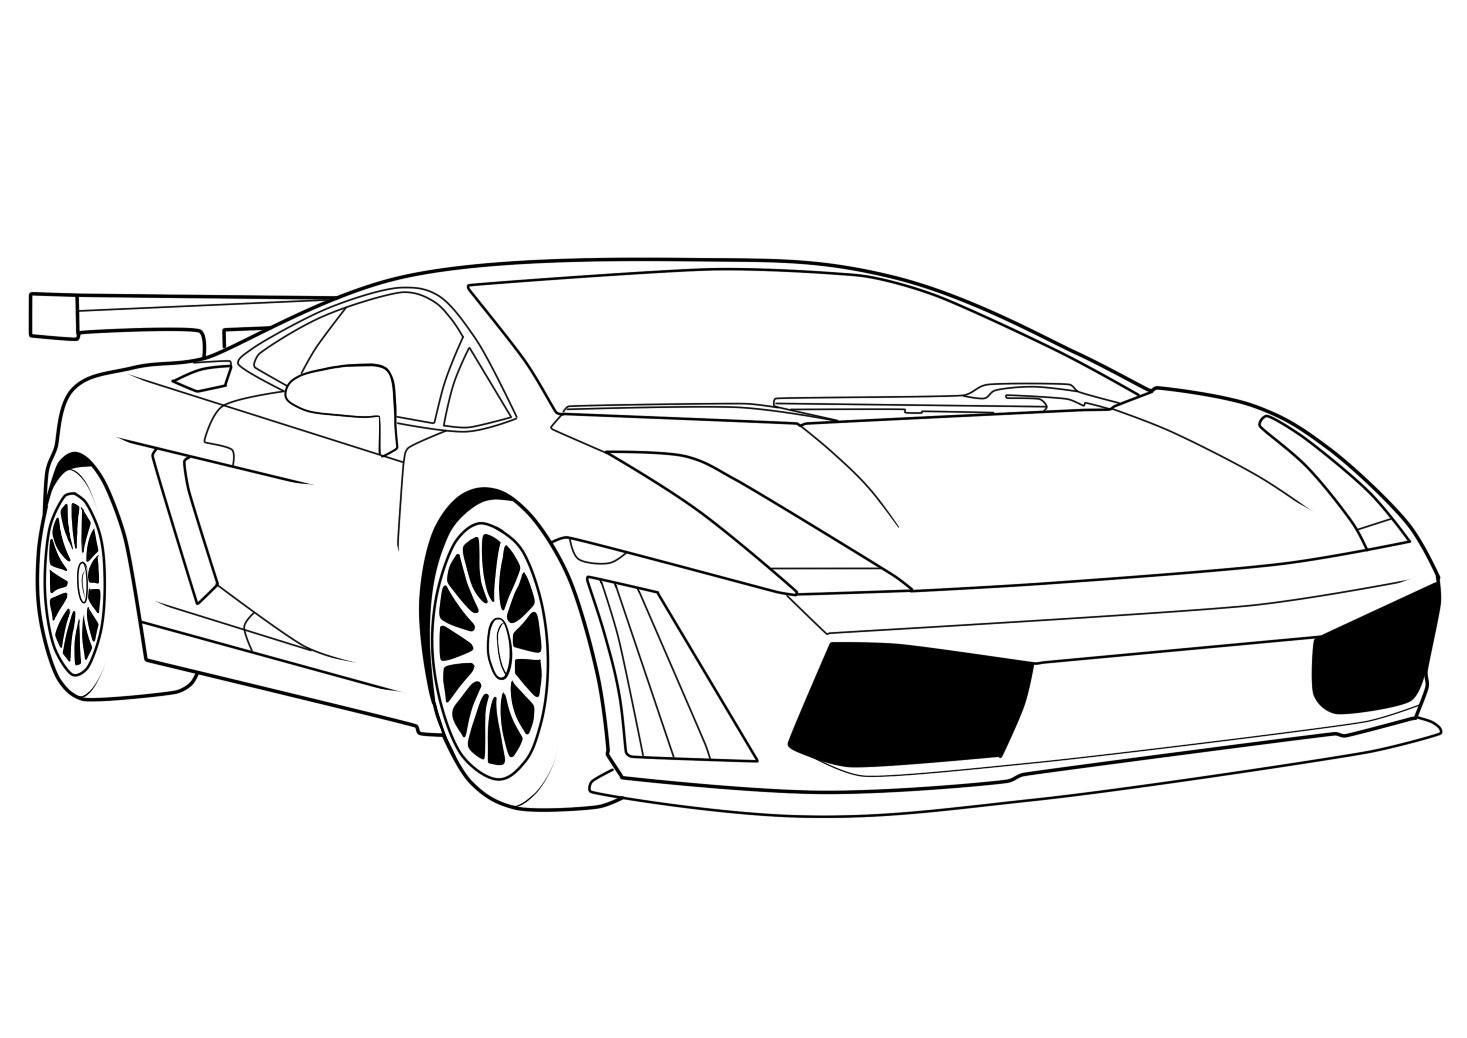 Awesome Coloring Page Lamborghini That You Must Know You Re In